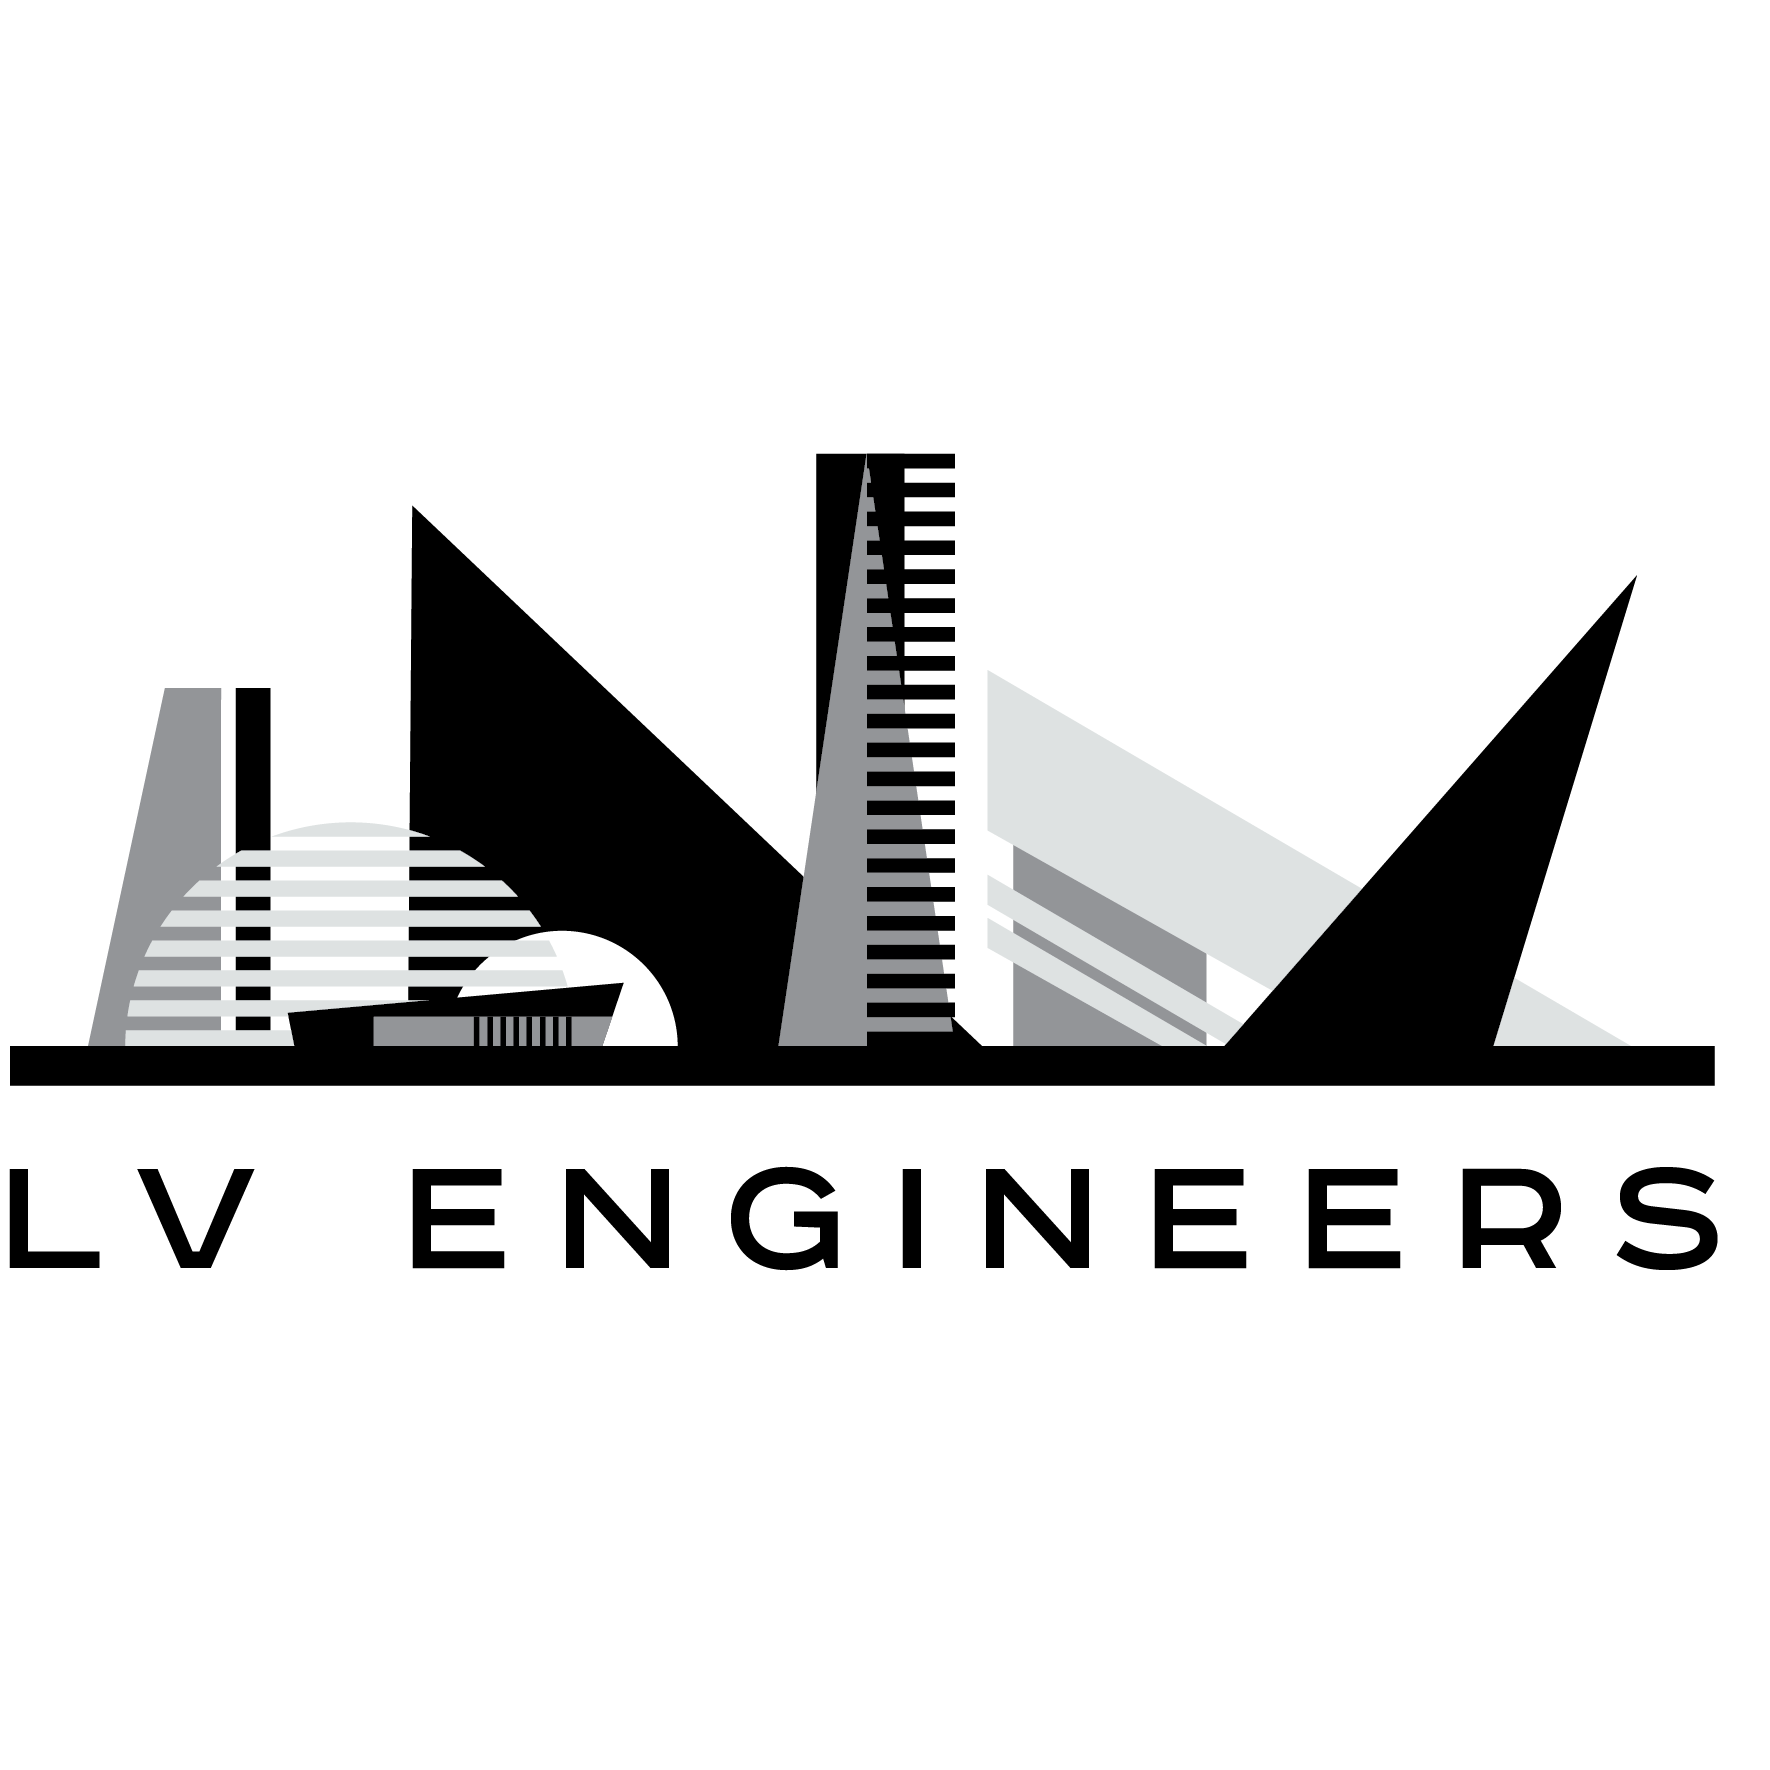 Las Vegas Engineers